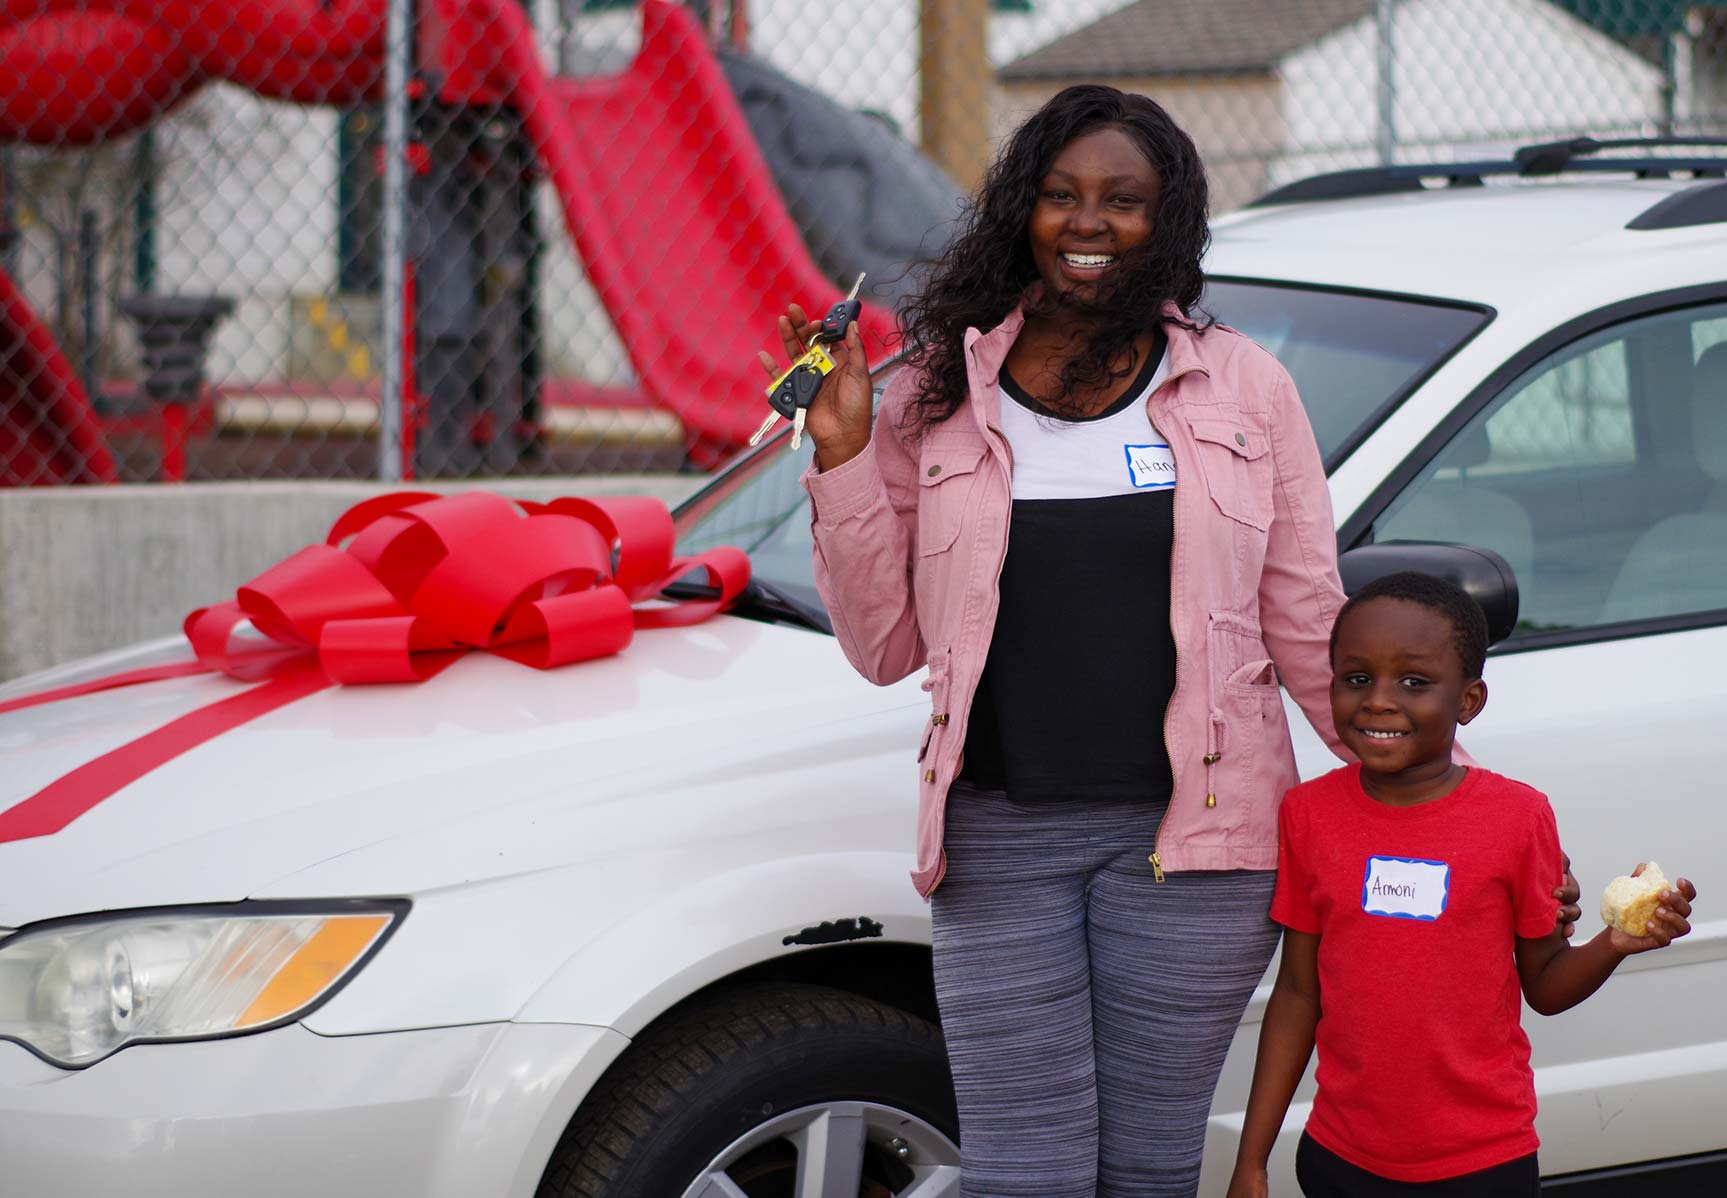 A woman and her son stand in front of a car smiling